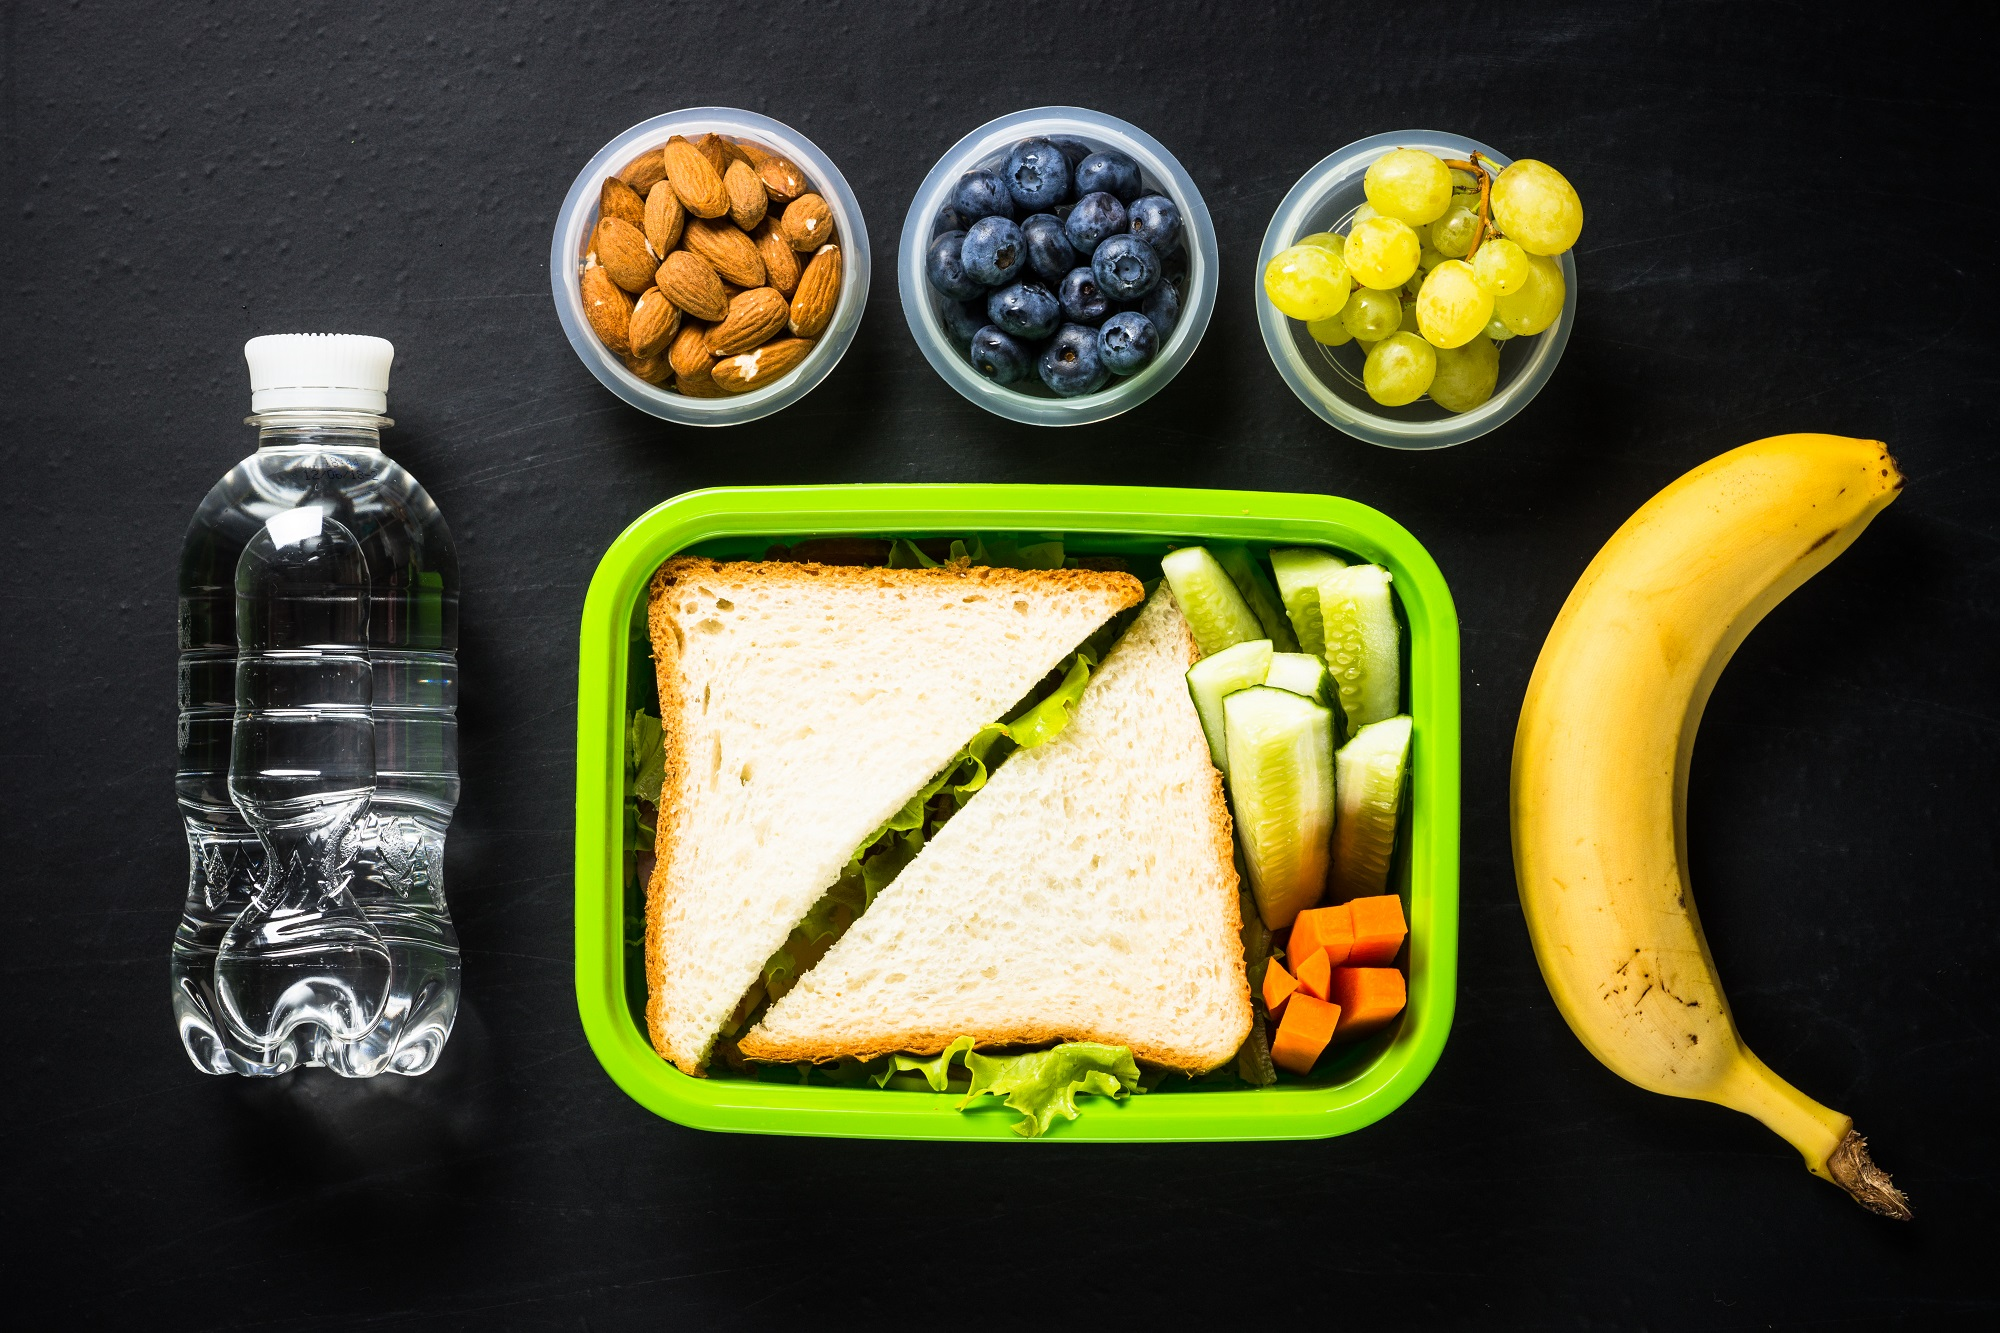 sandwich, vegetables, banana, water, nuts, and berries